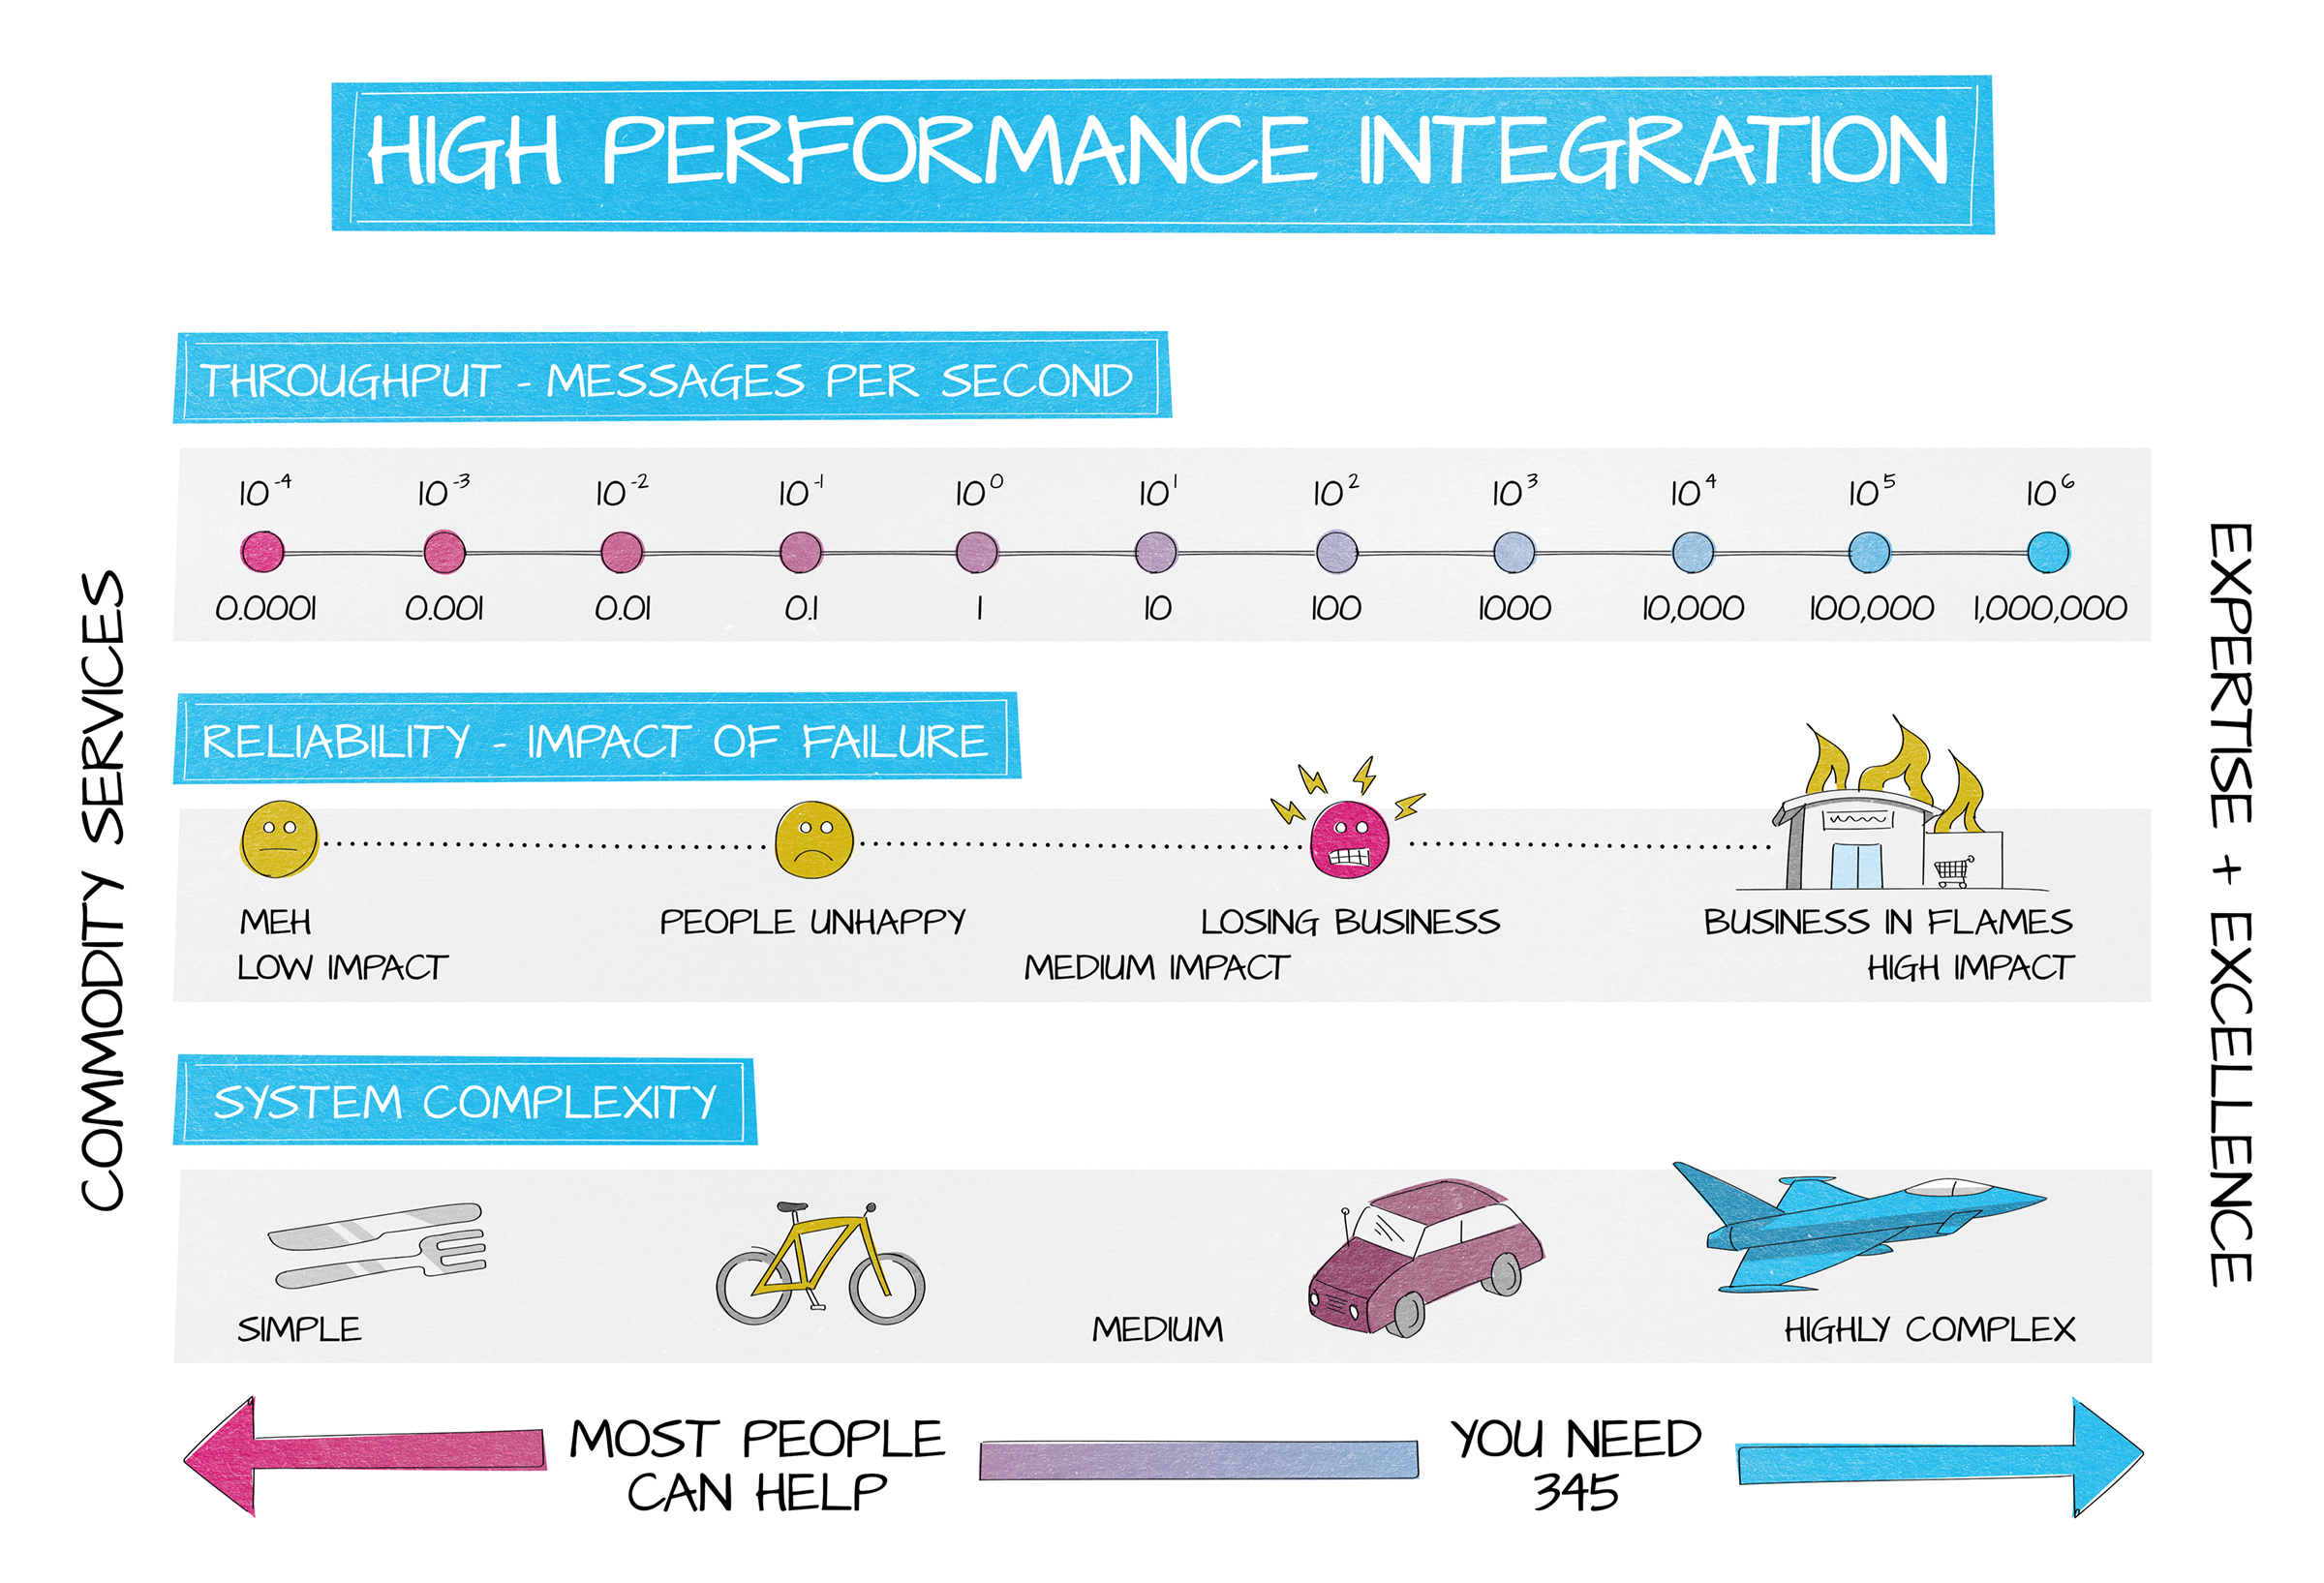 345 High performance integration - why you need us